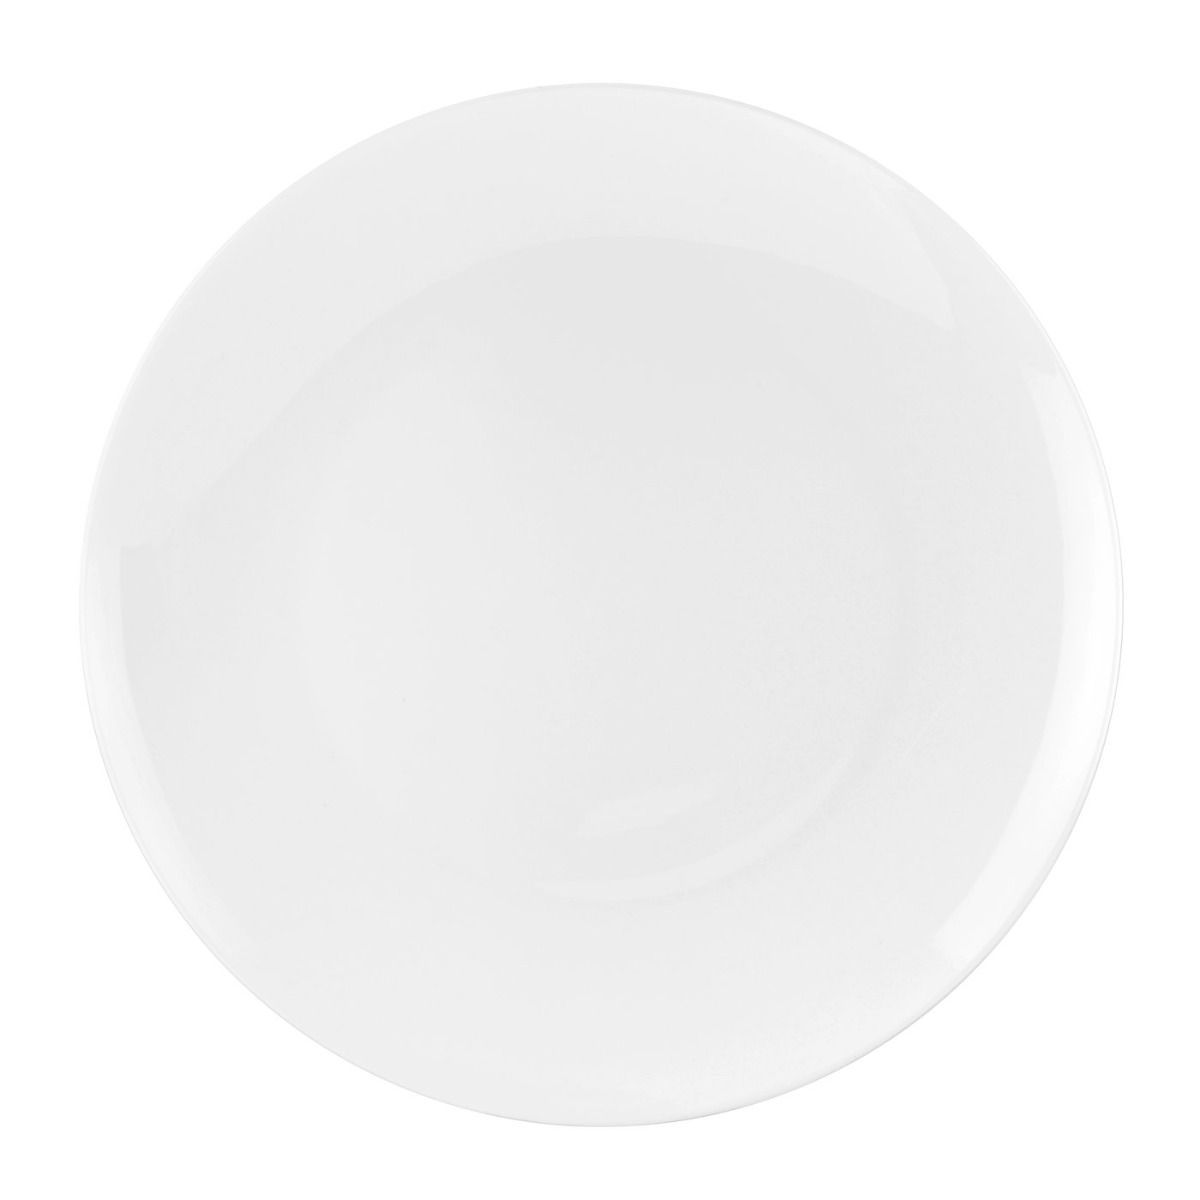 Royal Worcester Serendipity White Coupe Plate - 10.5